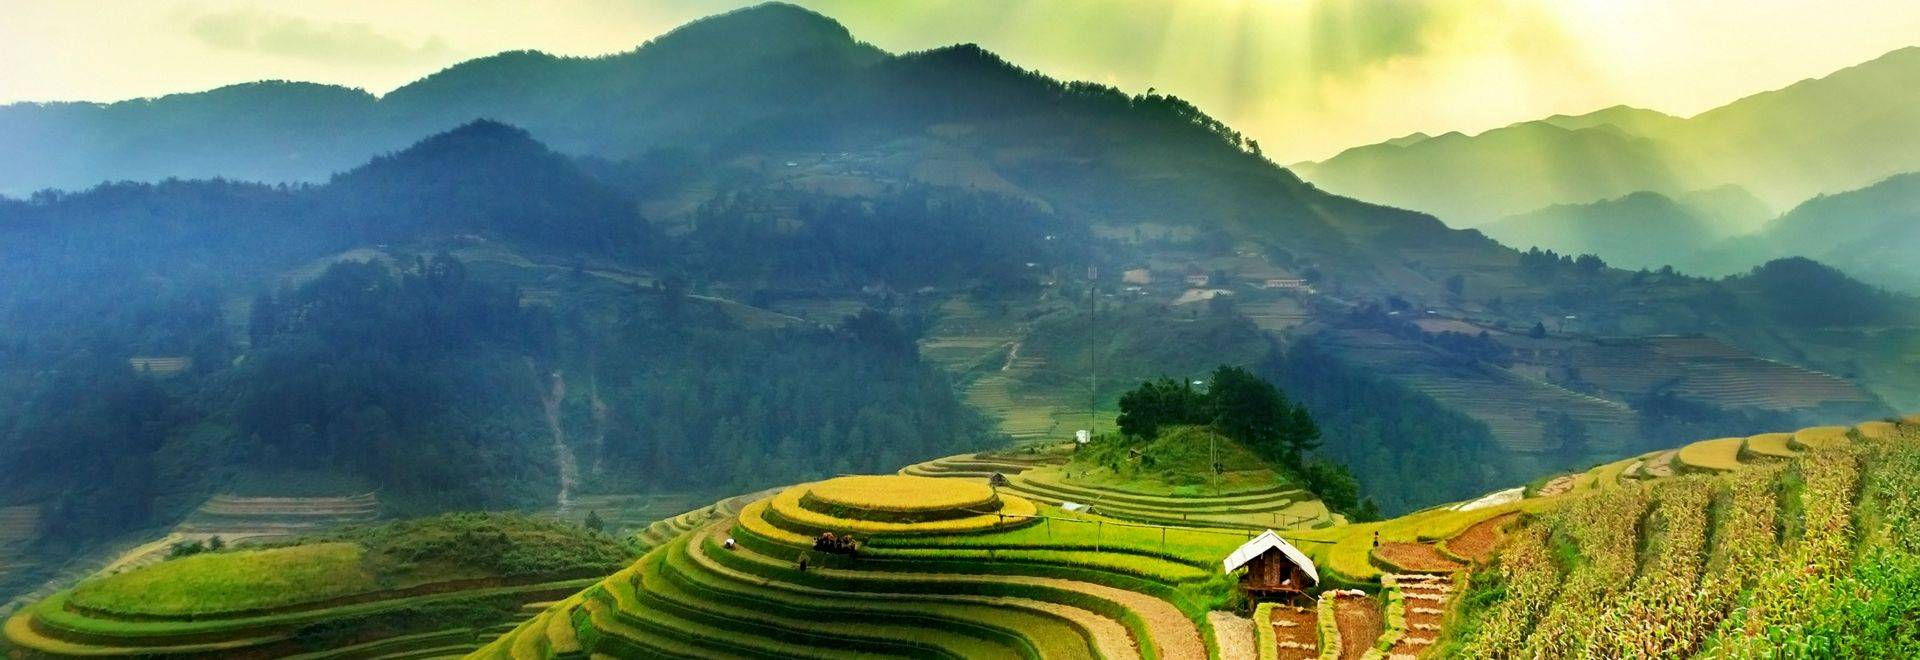 Shutterstock 380160928 Sapa North West Vietnam